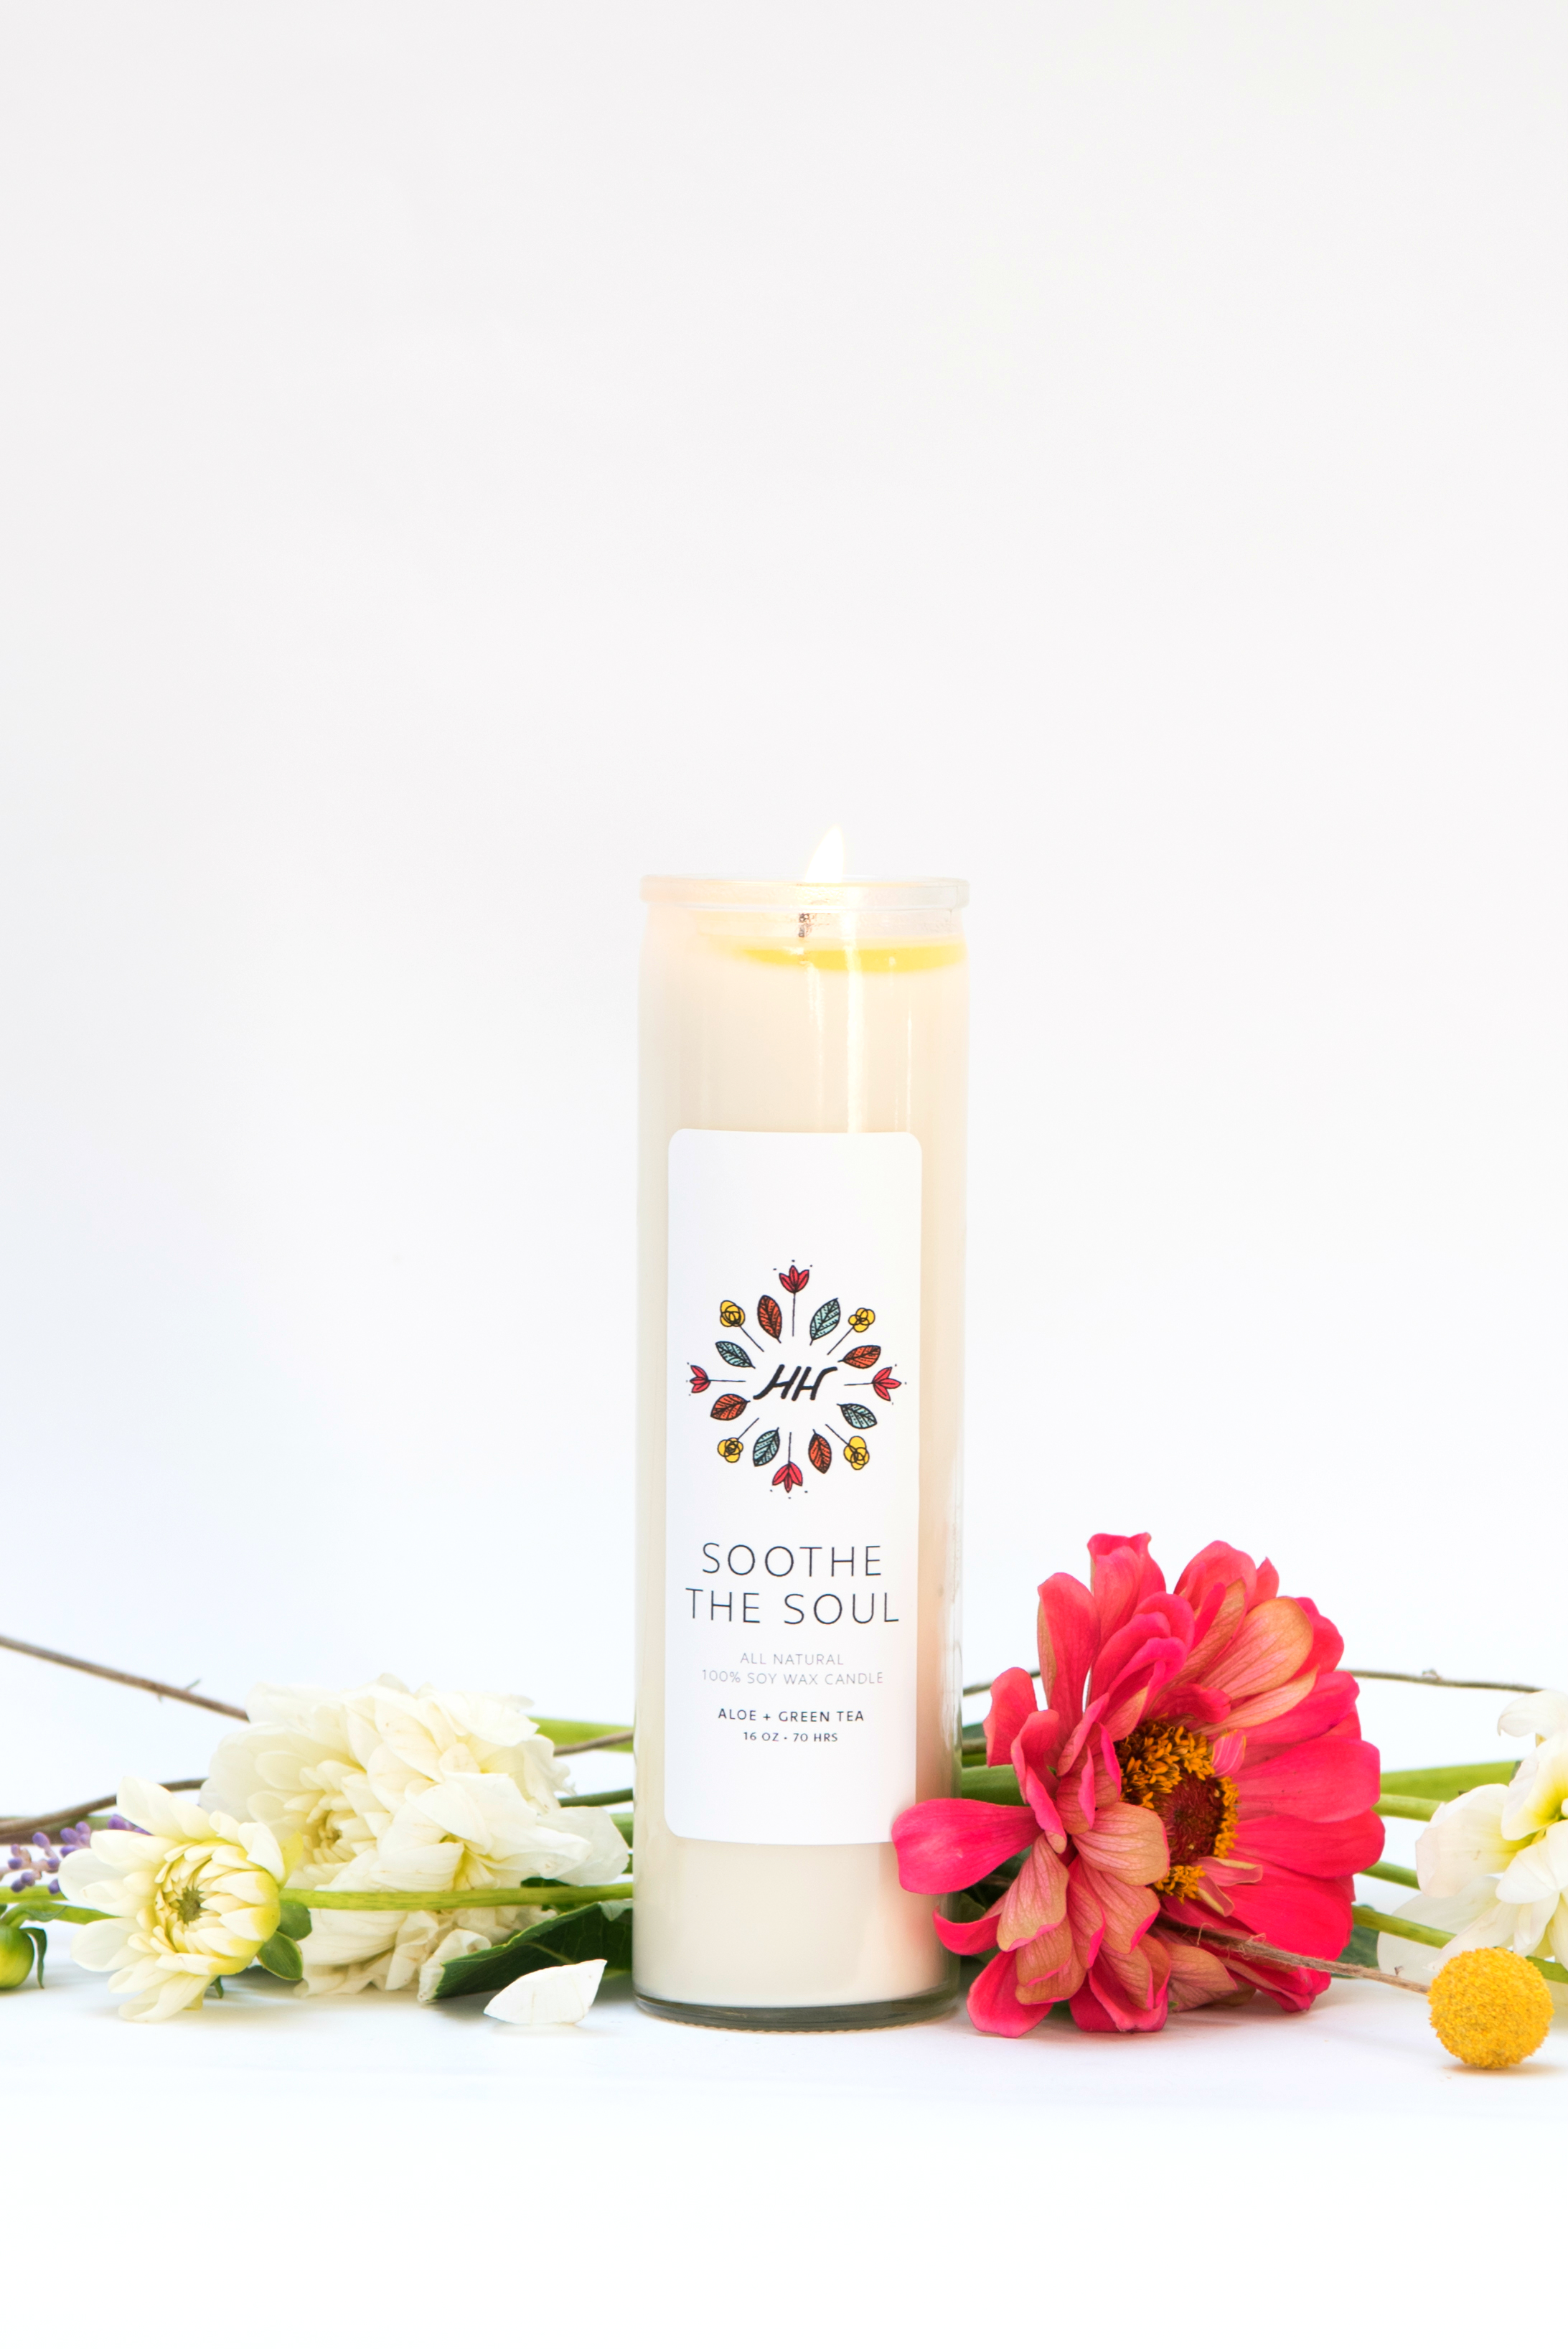 Soothe the Soul Mantra Candle